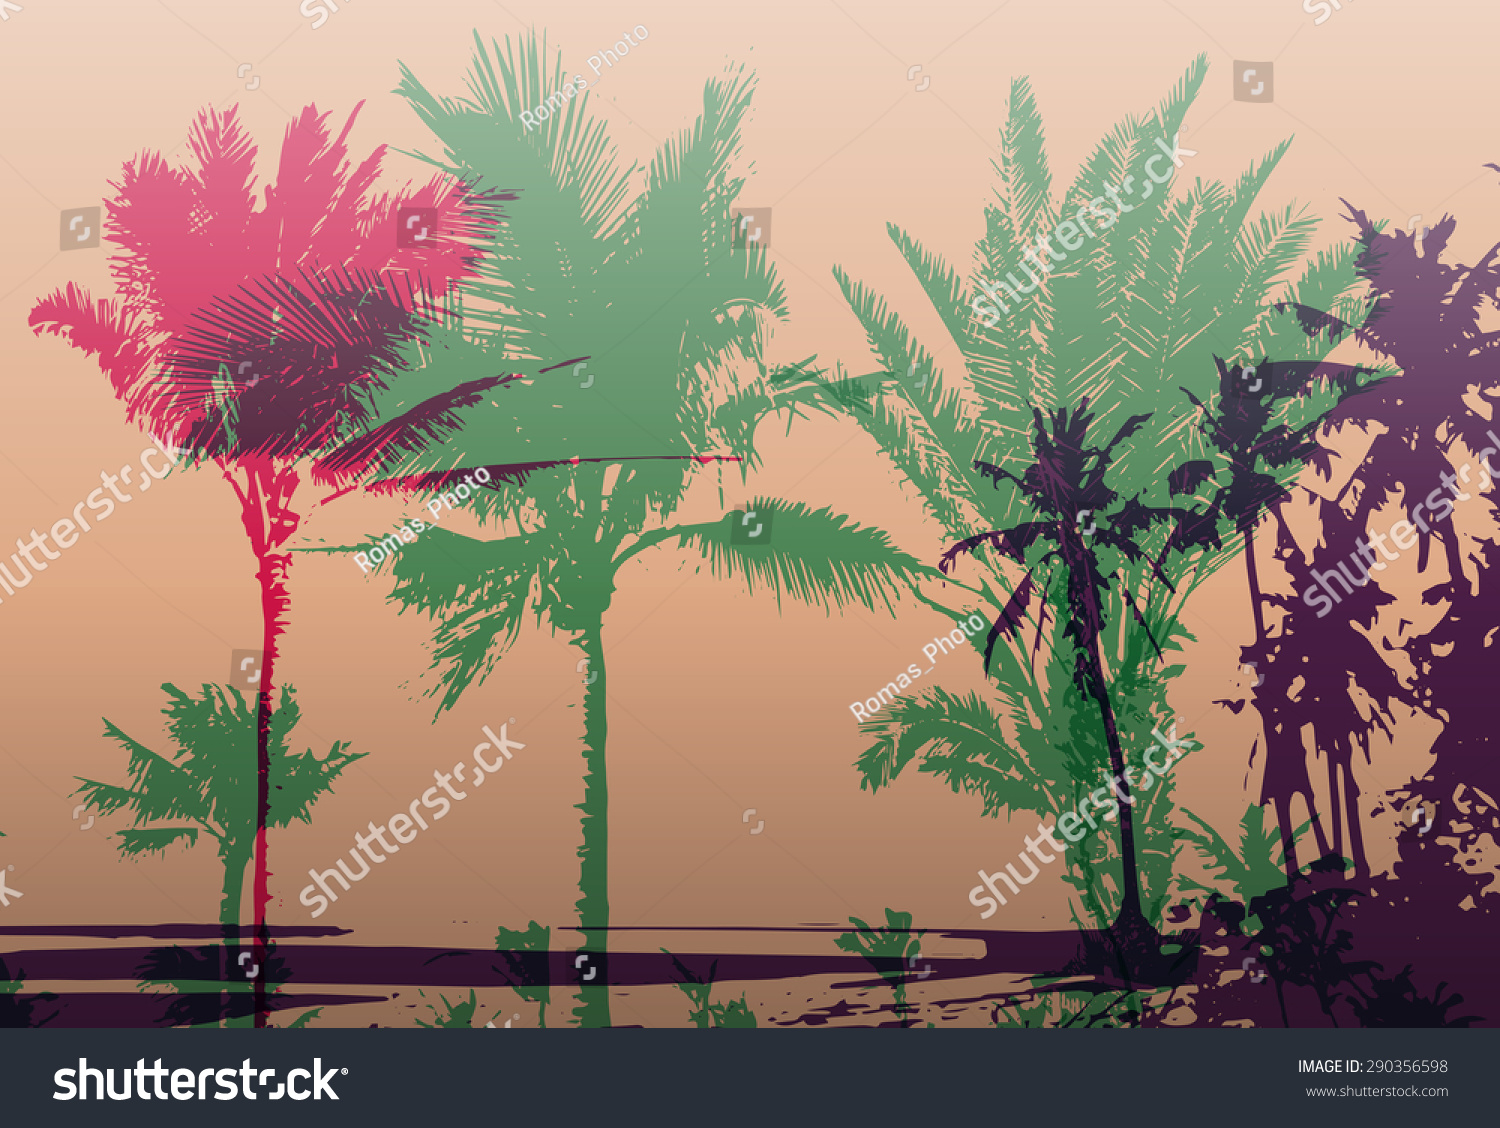 Colorful Background Silhouette Palm Trees On Stock Vector 290356598 ...